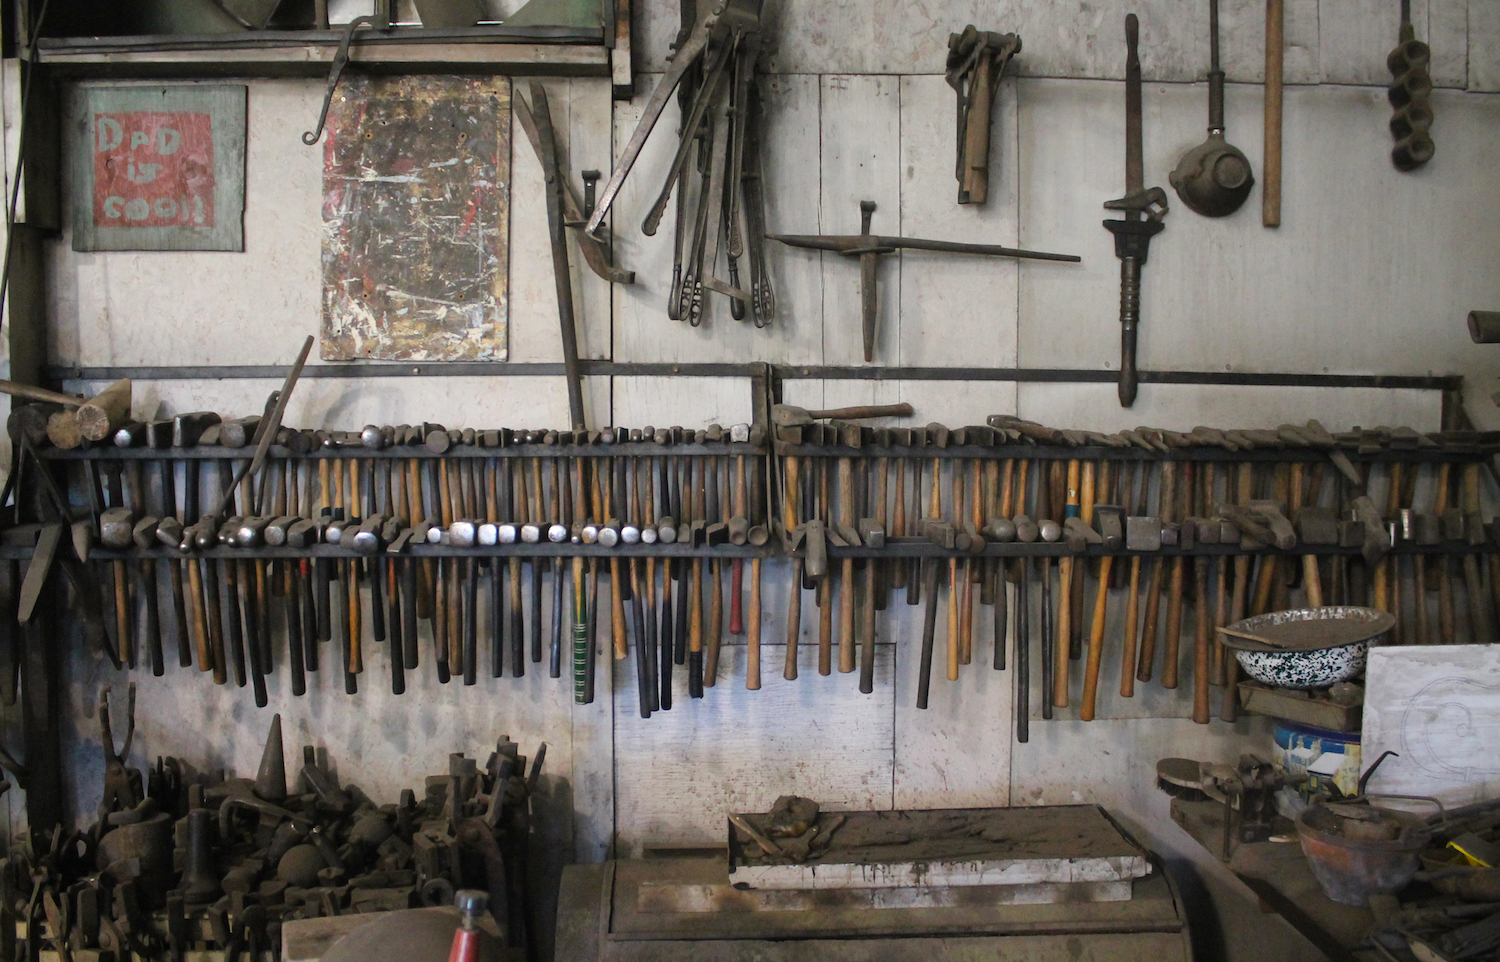 Parks' hammer collection.